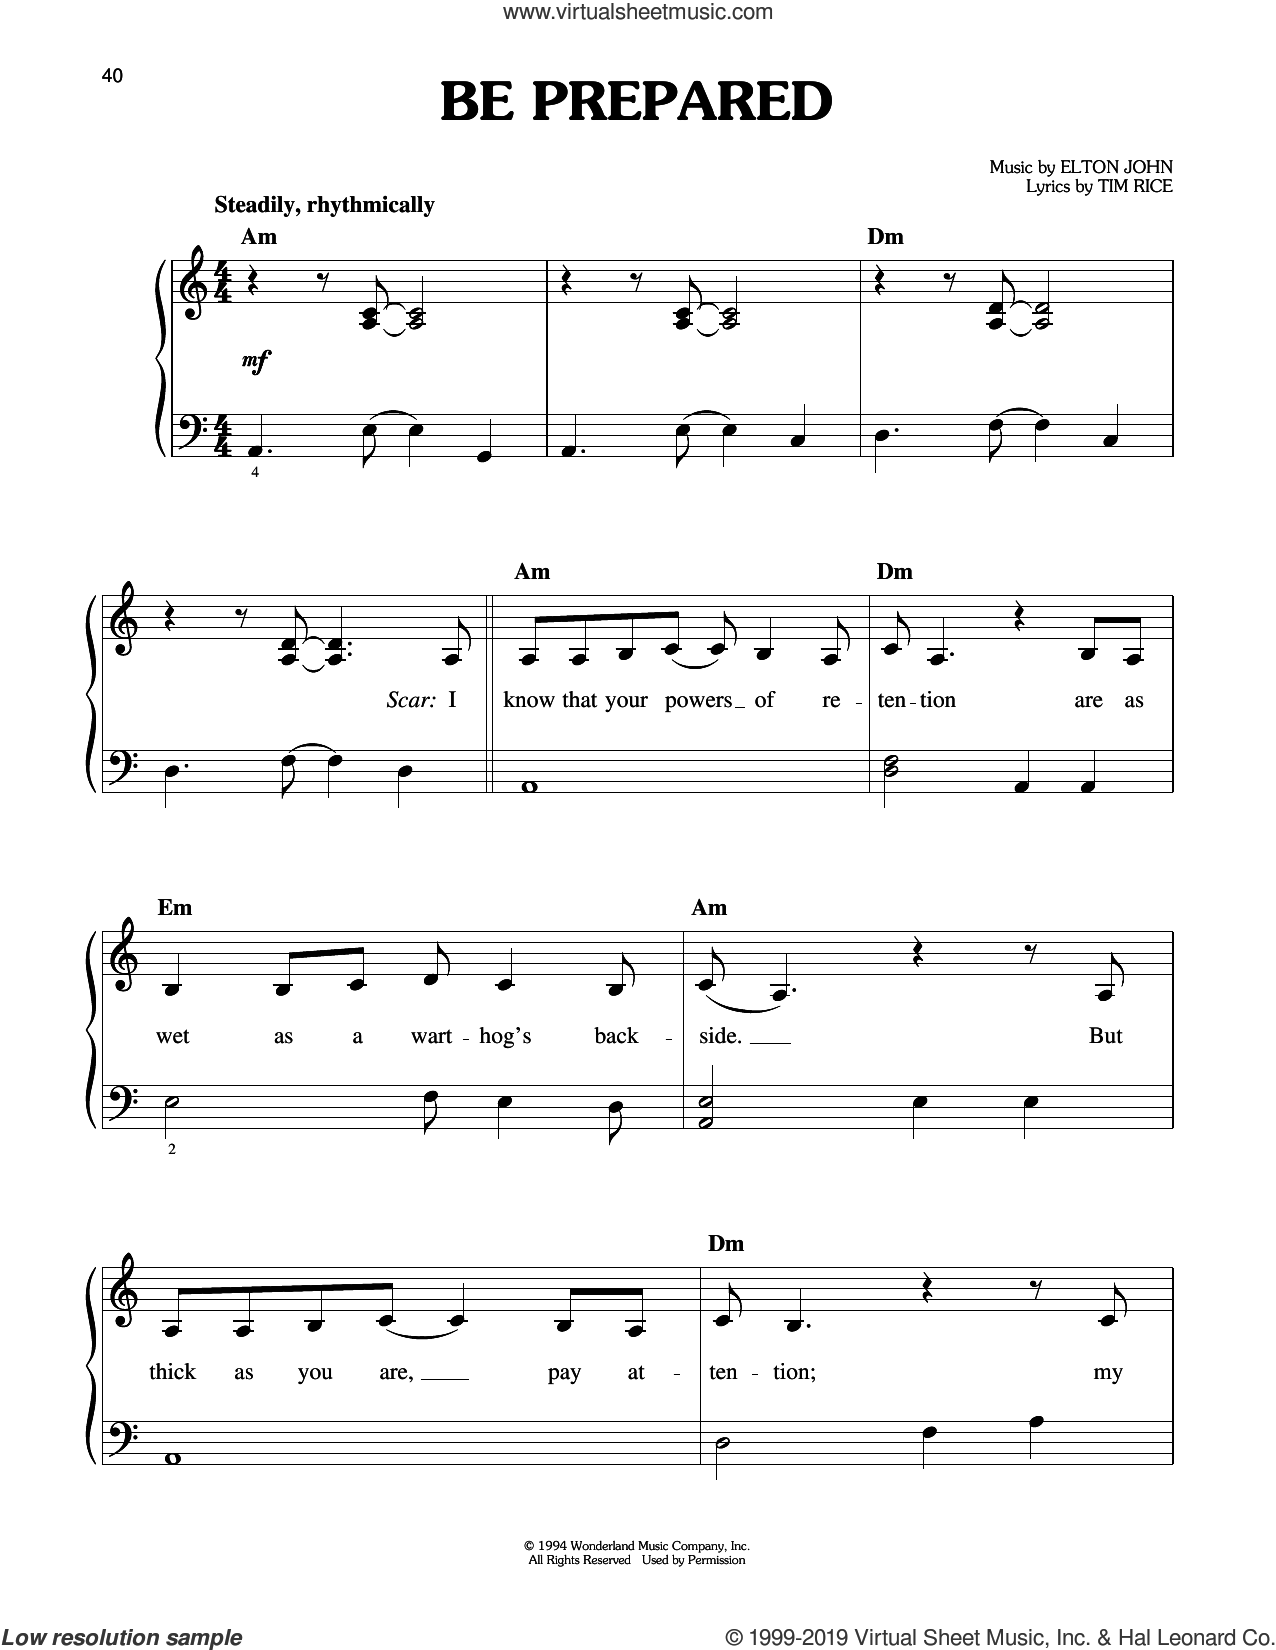 Be Prepared (from The Lion King: Broadway Musical) sheet music for piano solo by Elton John and Tim Rice, easy skill level